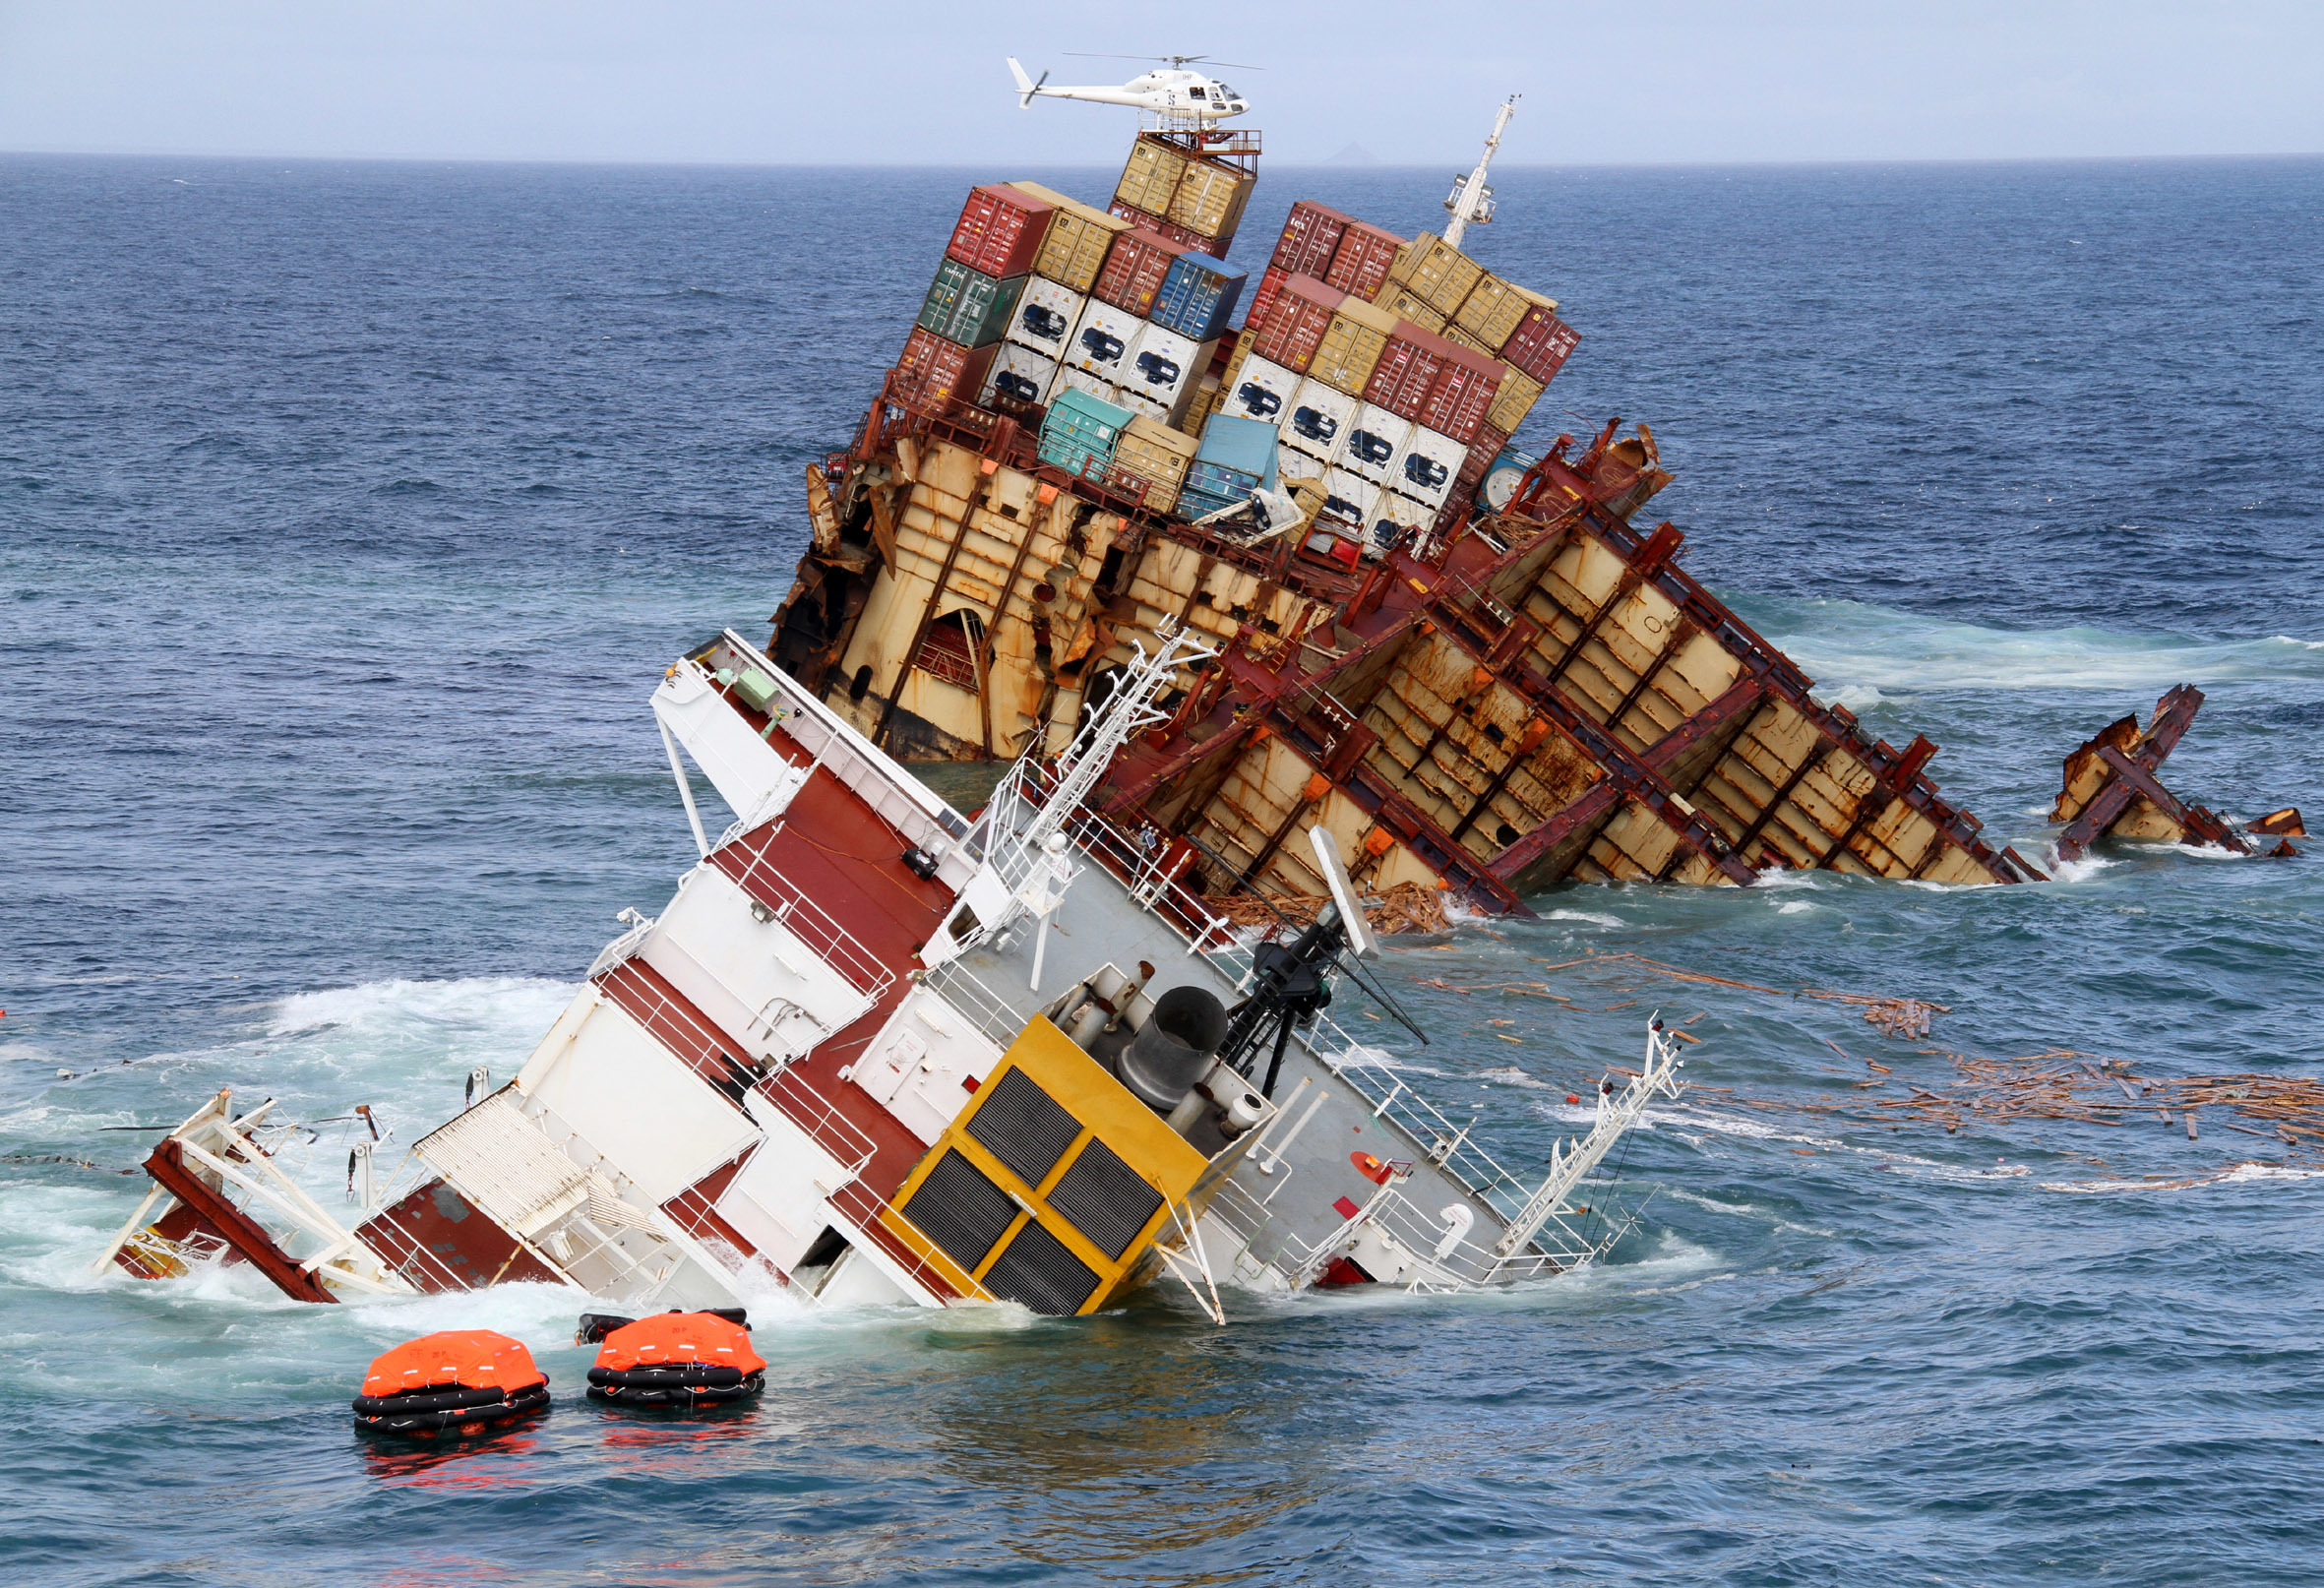 On 4 October 2011, the Rena was sailing from Napier to Tauranga, New Zealand, when it ran aground on the Astrolabe Reef in the Bay of Plenty. The reef seriously damaged the vessel's hull. Its cargo comprised 1,368 containers with wood, machine components, dairy, fish and meat products, as well as 11 containers with hazardous materials.